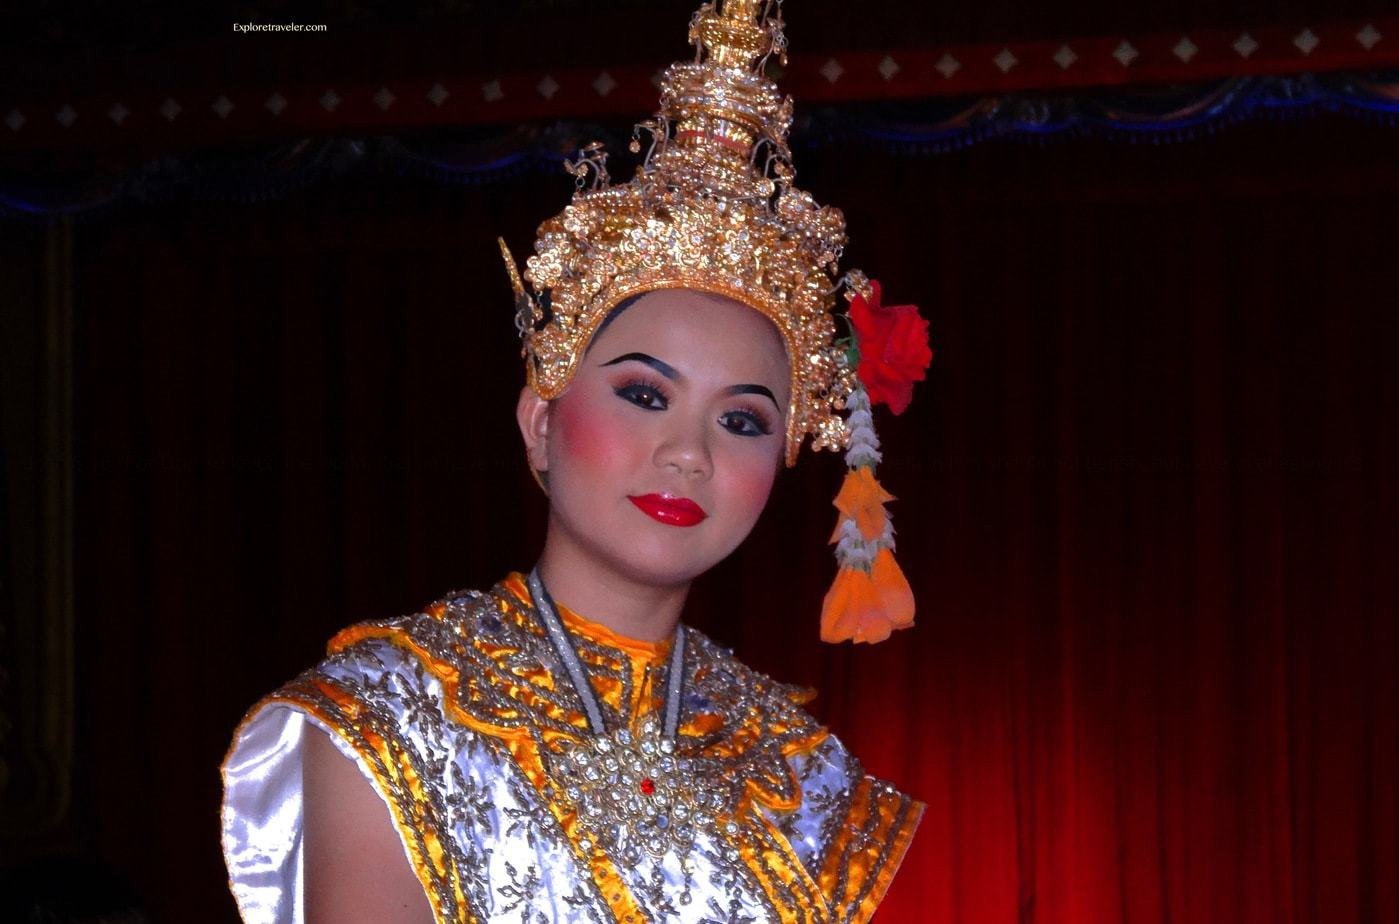 The traditional Thai Dance dates back to ancient Siamese times.